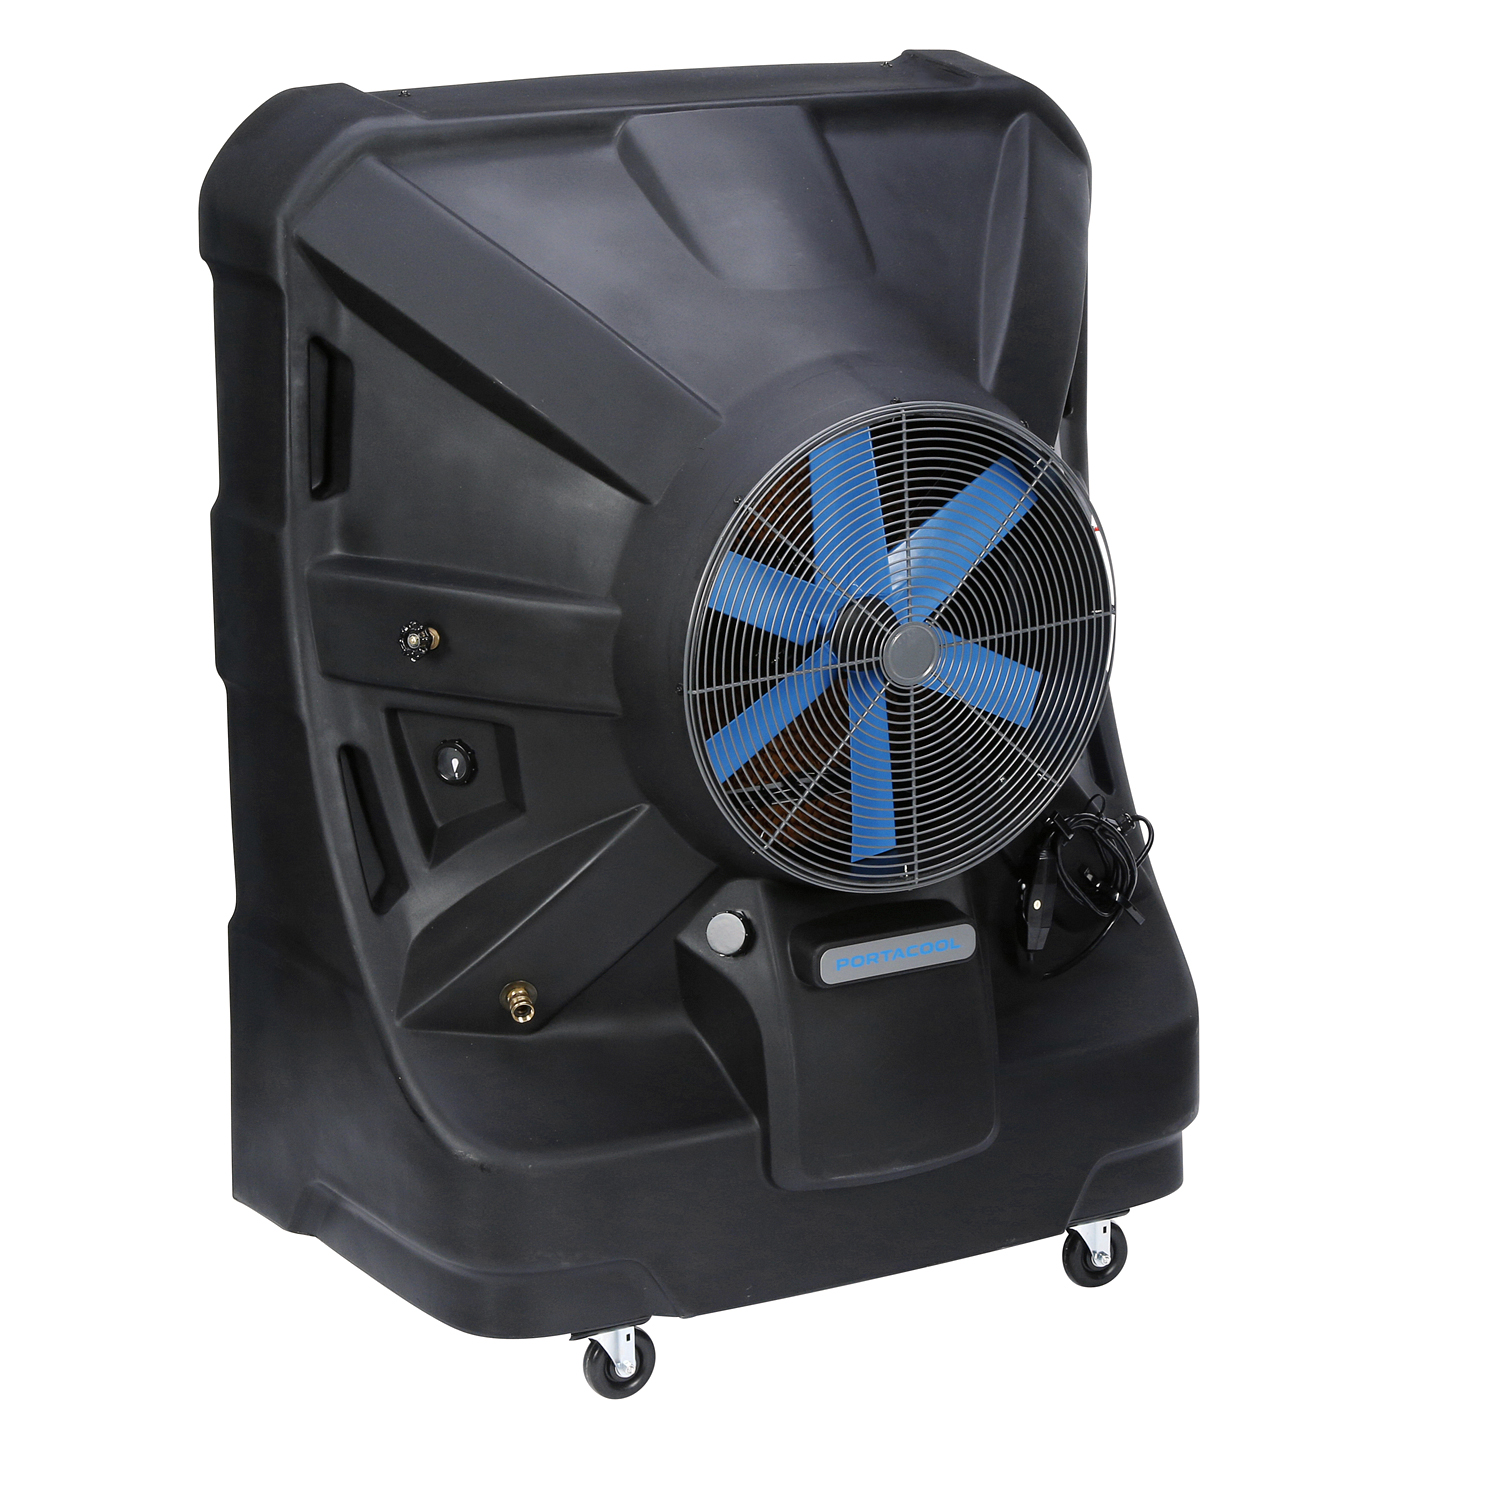 Portable-Evaporative-Cooler-Portacool-Safety-Cool-Jetstream-250-Right-Face